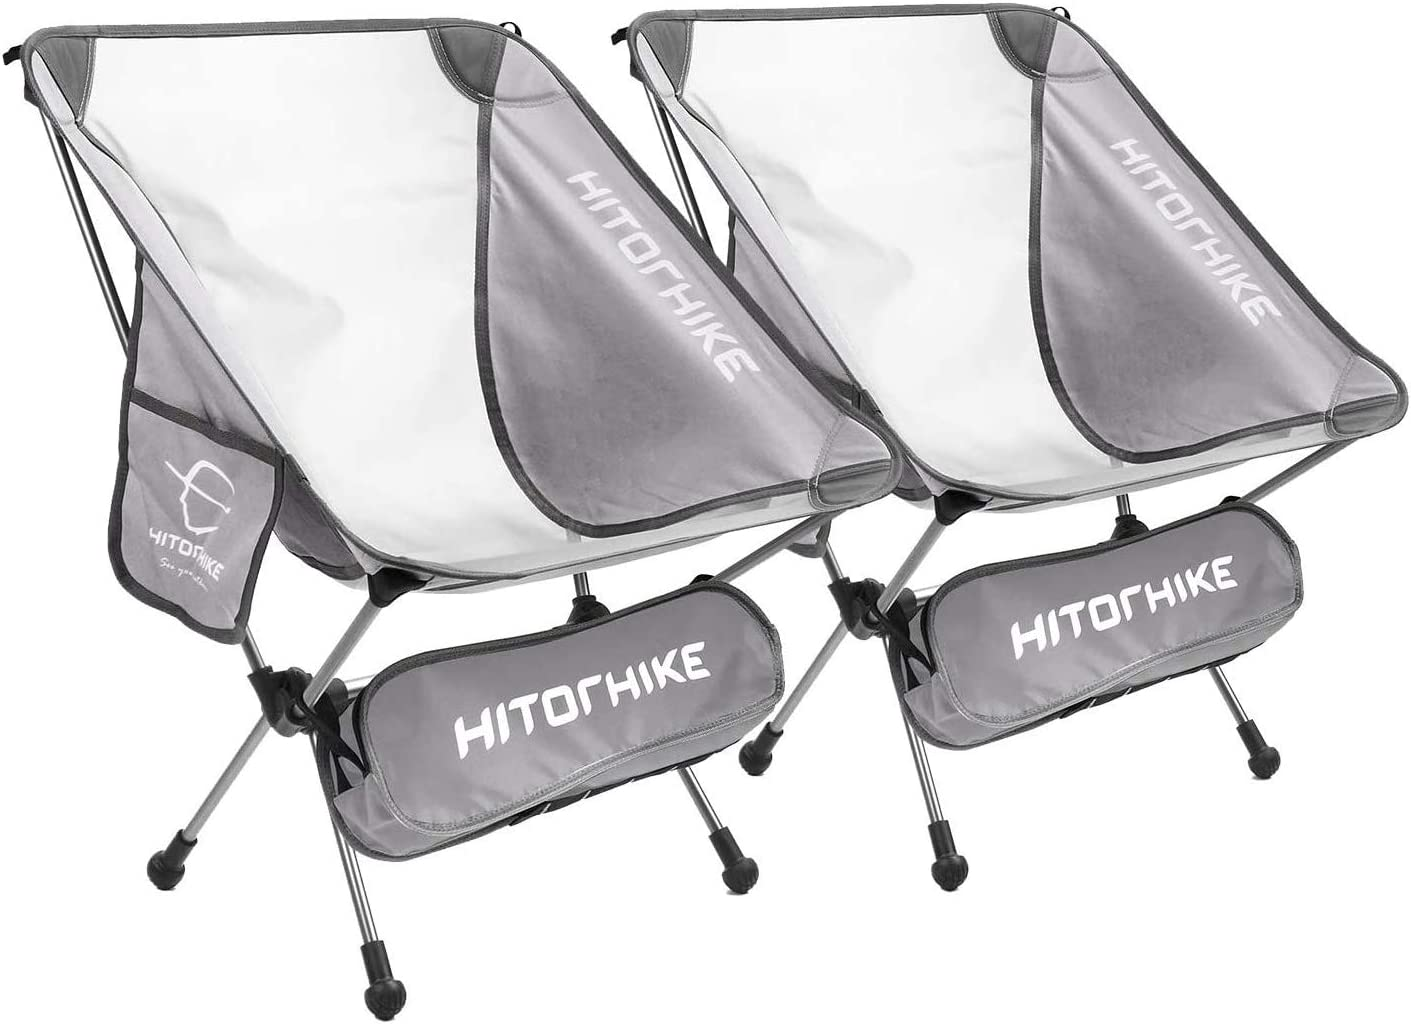 Hitorhike Camping Chair Breathable Limited time sale 2021 model Mesh Construction 2 Pock Side